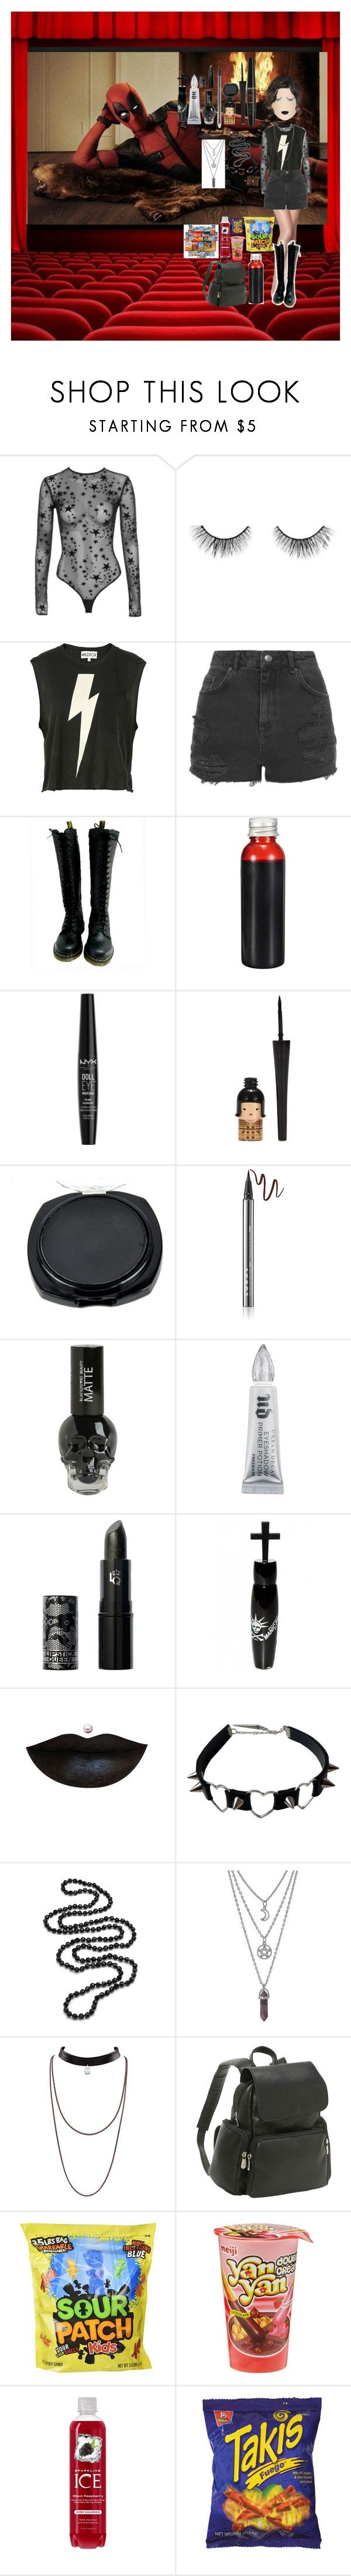 """""""I'm watching deadpool"""" by ashleypurdy98 ❤ liked on Polyvore featuring Marvel, tarte, Wildfox, Topshop, Dr. Martens, NYX, LORAC, Hot Topic, Urban Decay and Lipstick Queen"""